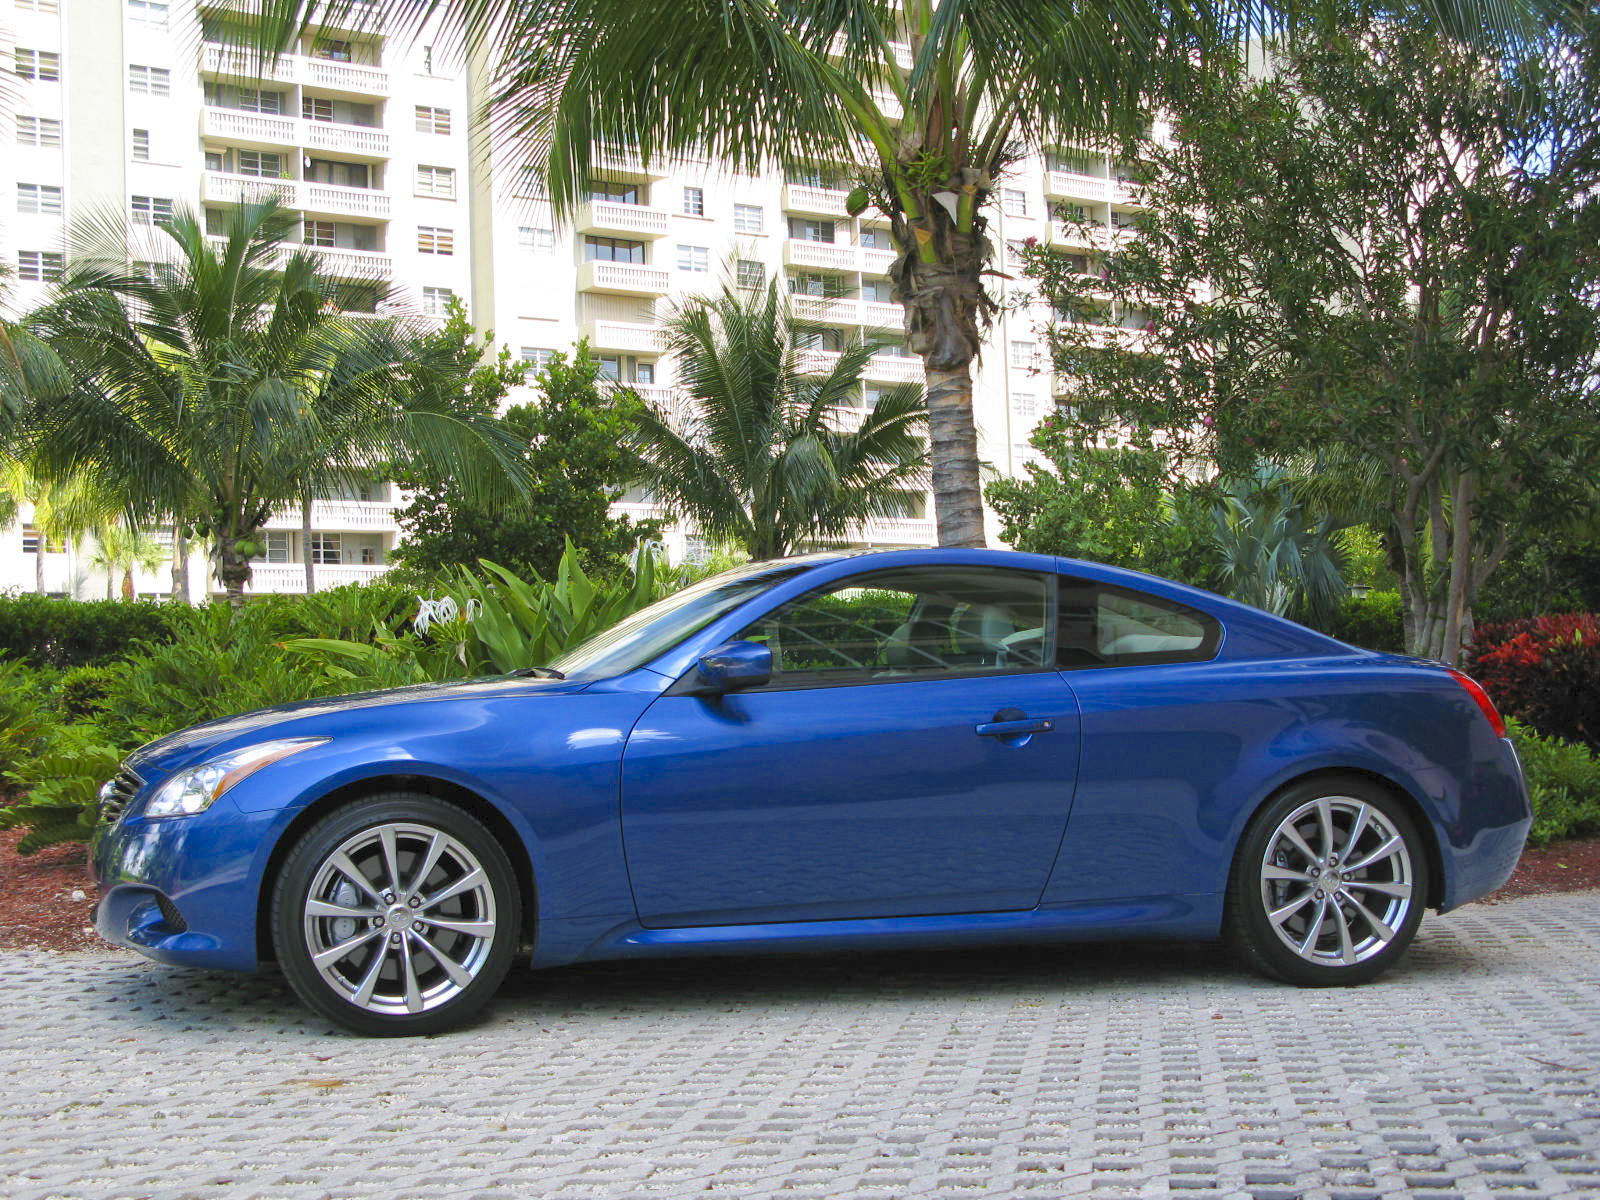 2009 infiniti g37 s coupe review top speed. Black Bedroom Furniture Sets. Home Design Ideas